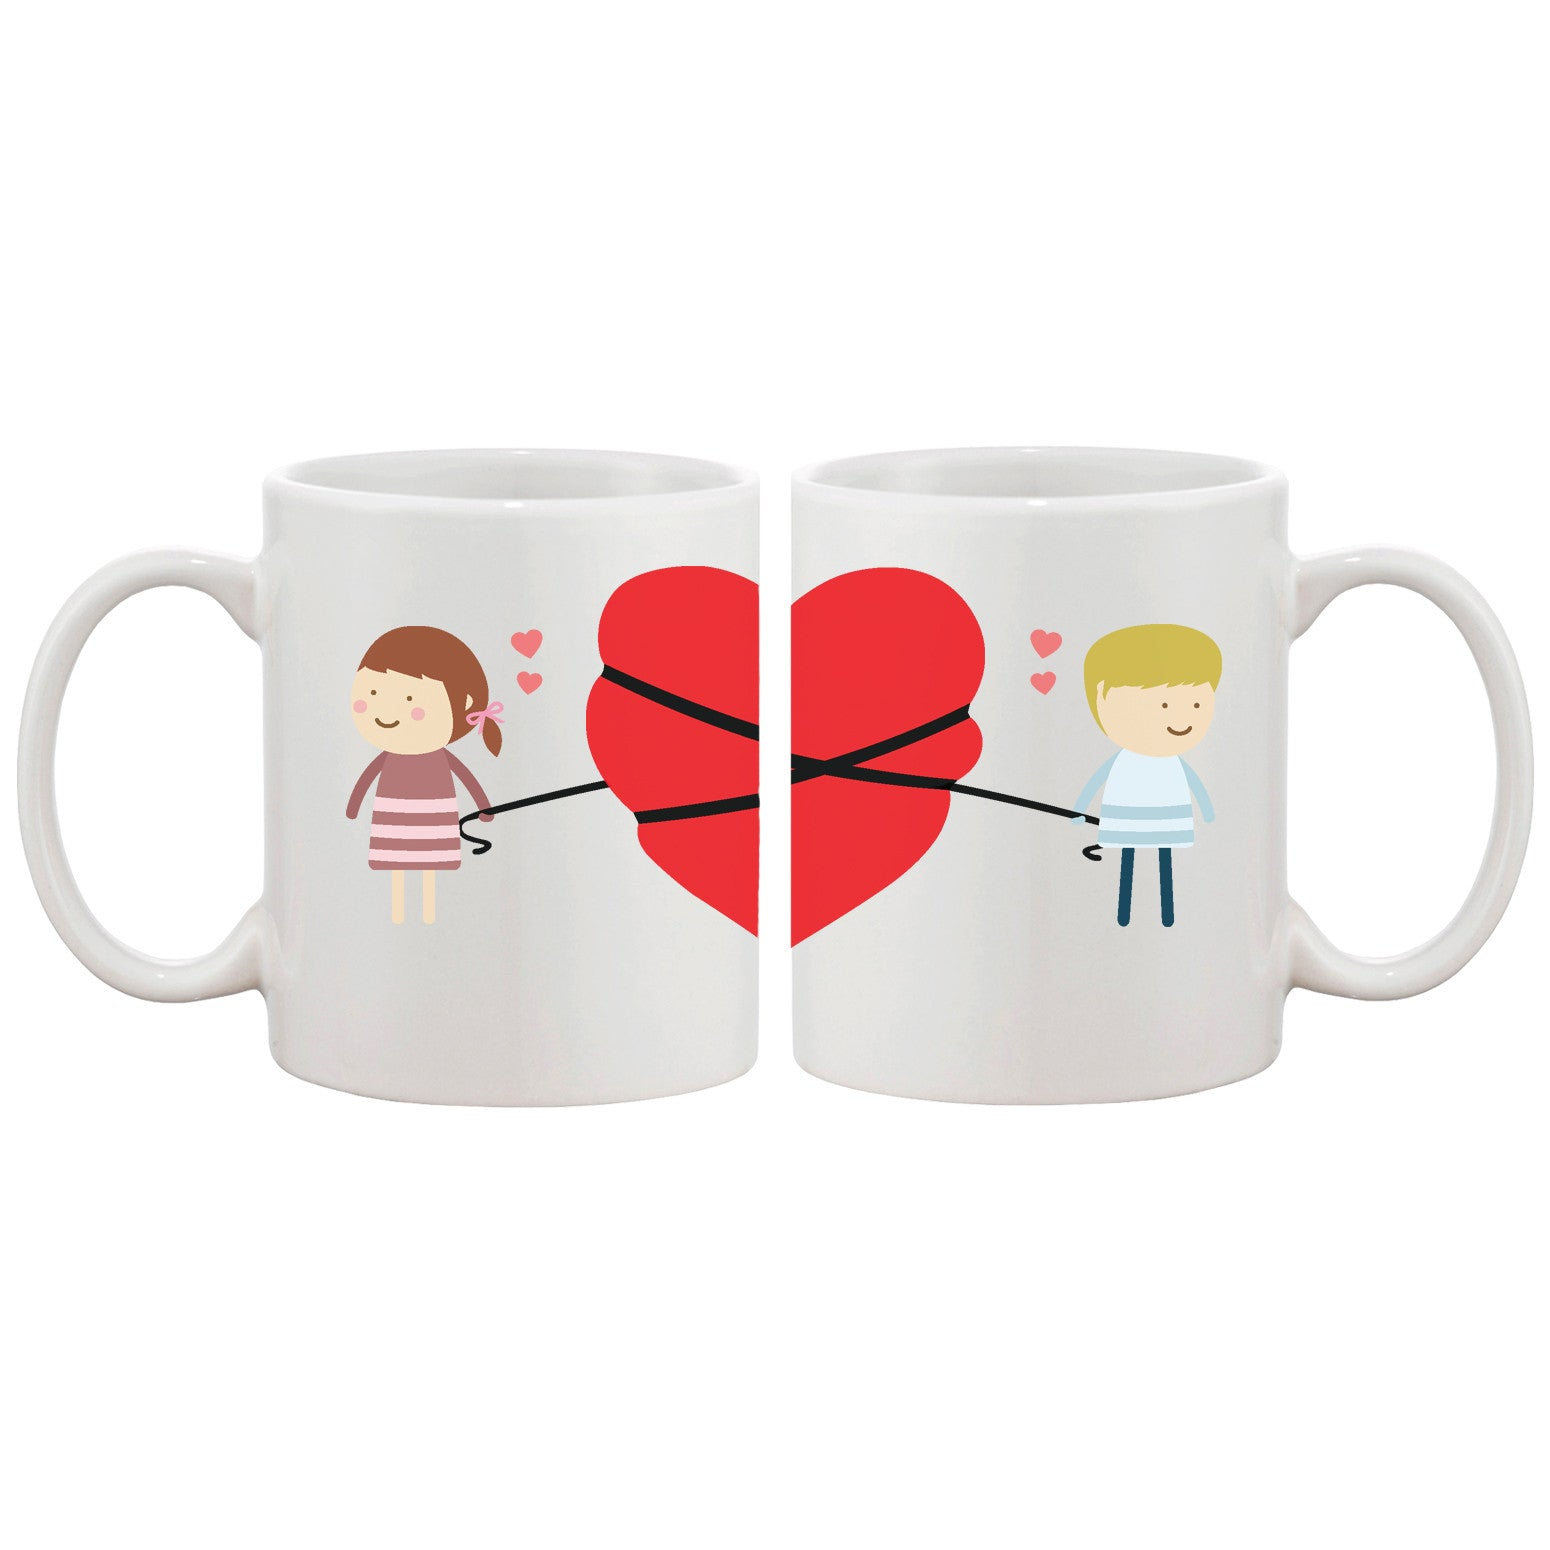 Love Connecting Couple Mugs Cute Graphic Design Coffee Mug Cup 11 Oz 365 In Love Matching Gifts Ideas